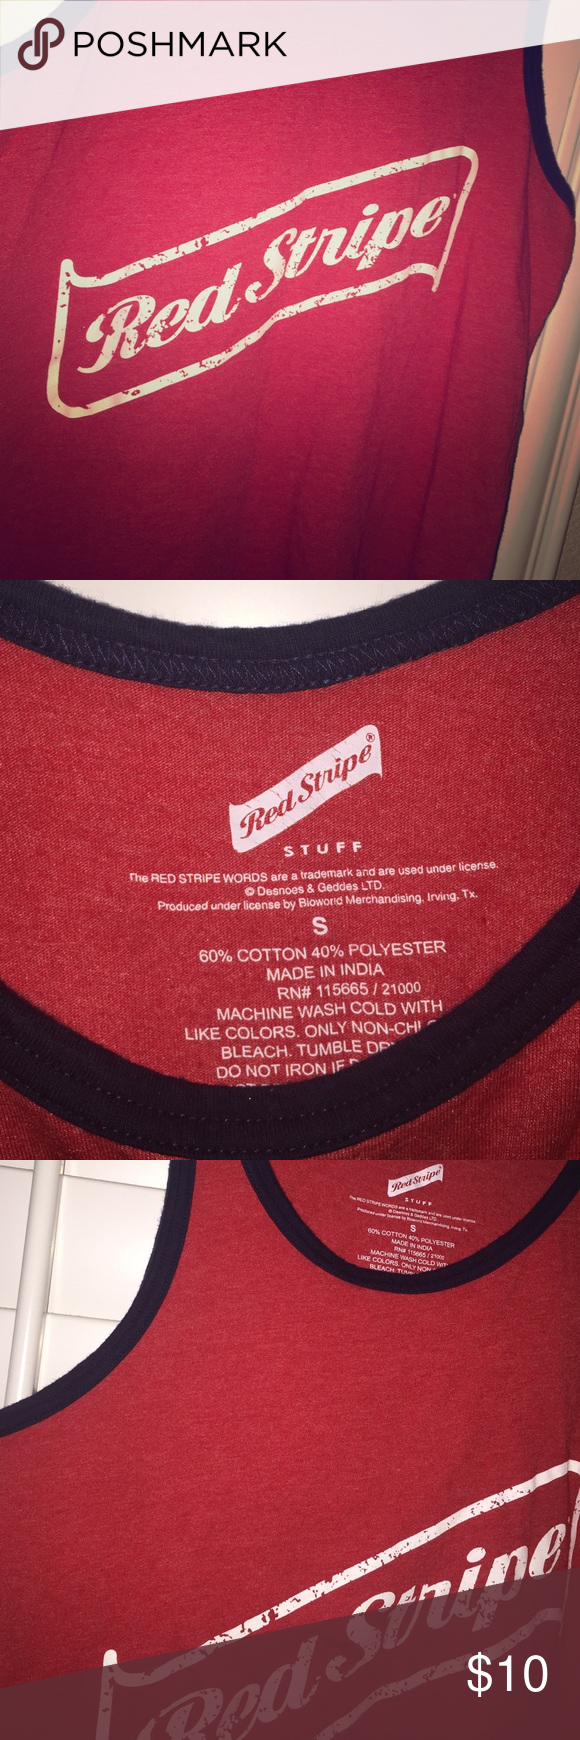 Men S Red Stripe Tank Top Red Stripe Beer Tank Top Prefect For Any Beer Lover Shirts Tank Tops Red Striped Tank Top Red Striped Tank Striped Tank Top